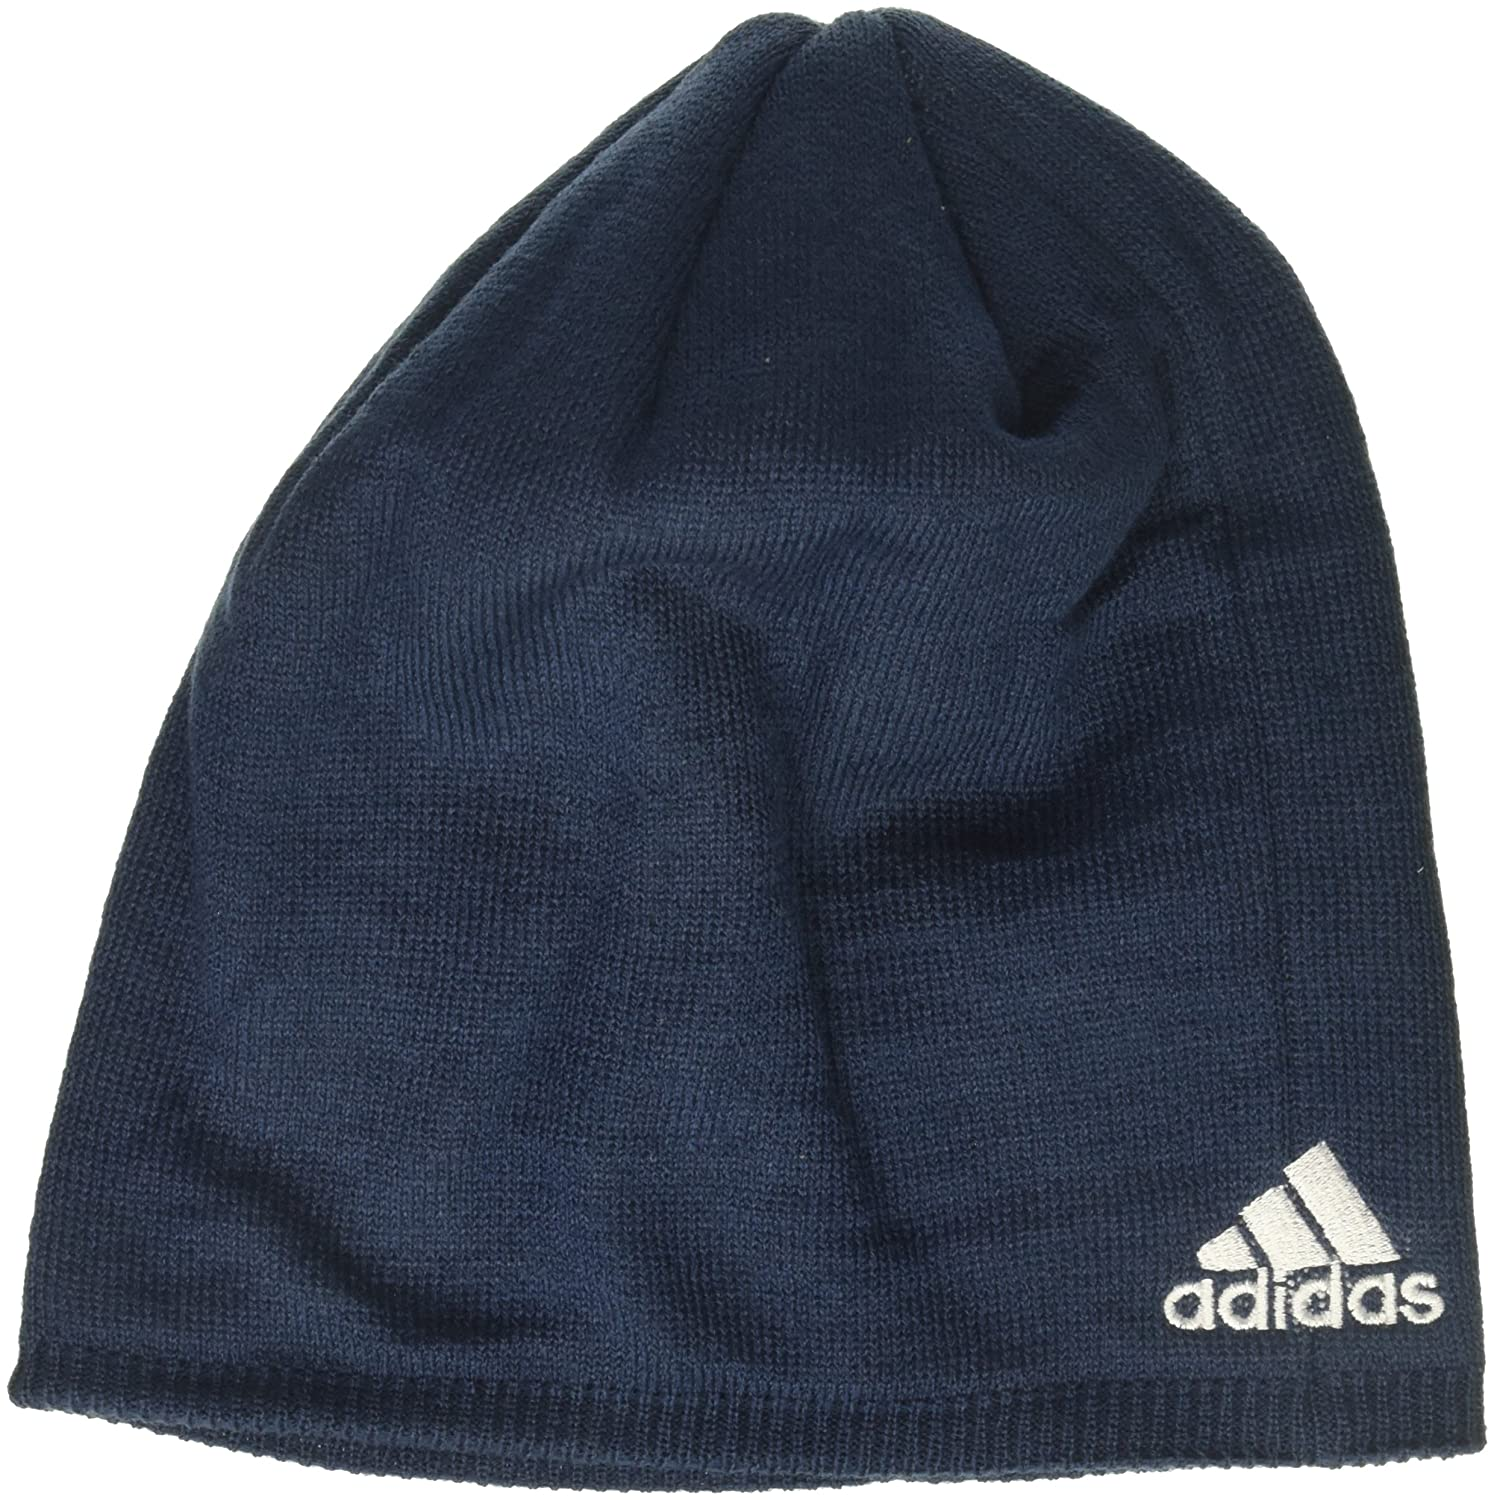 Blue adidas Adult Men Glow in The Dark Knit One Size